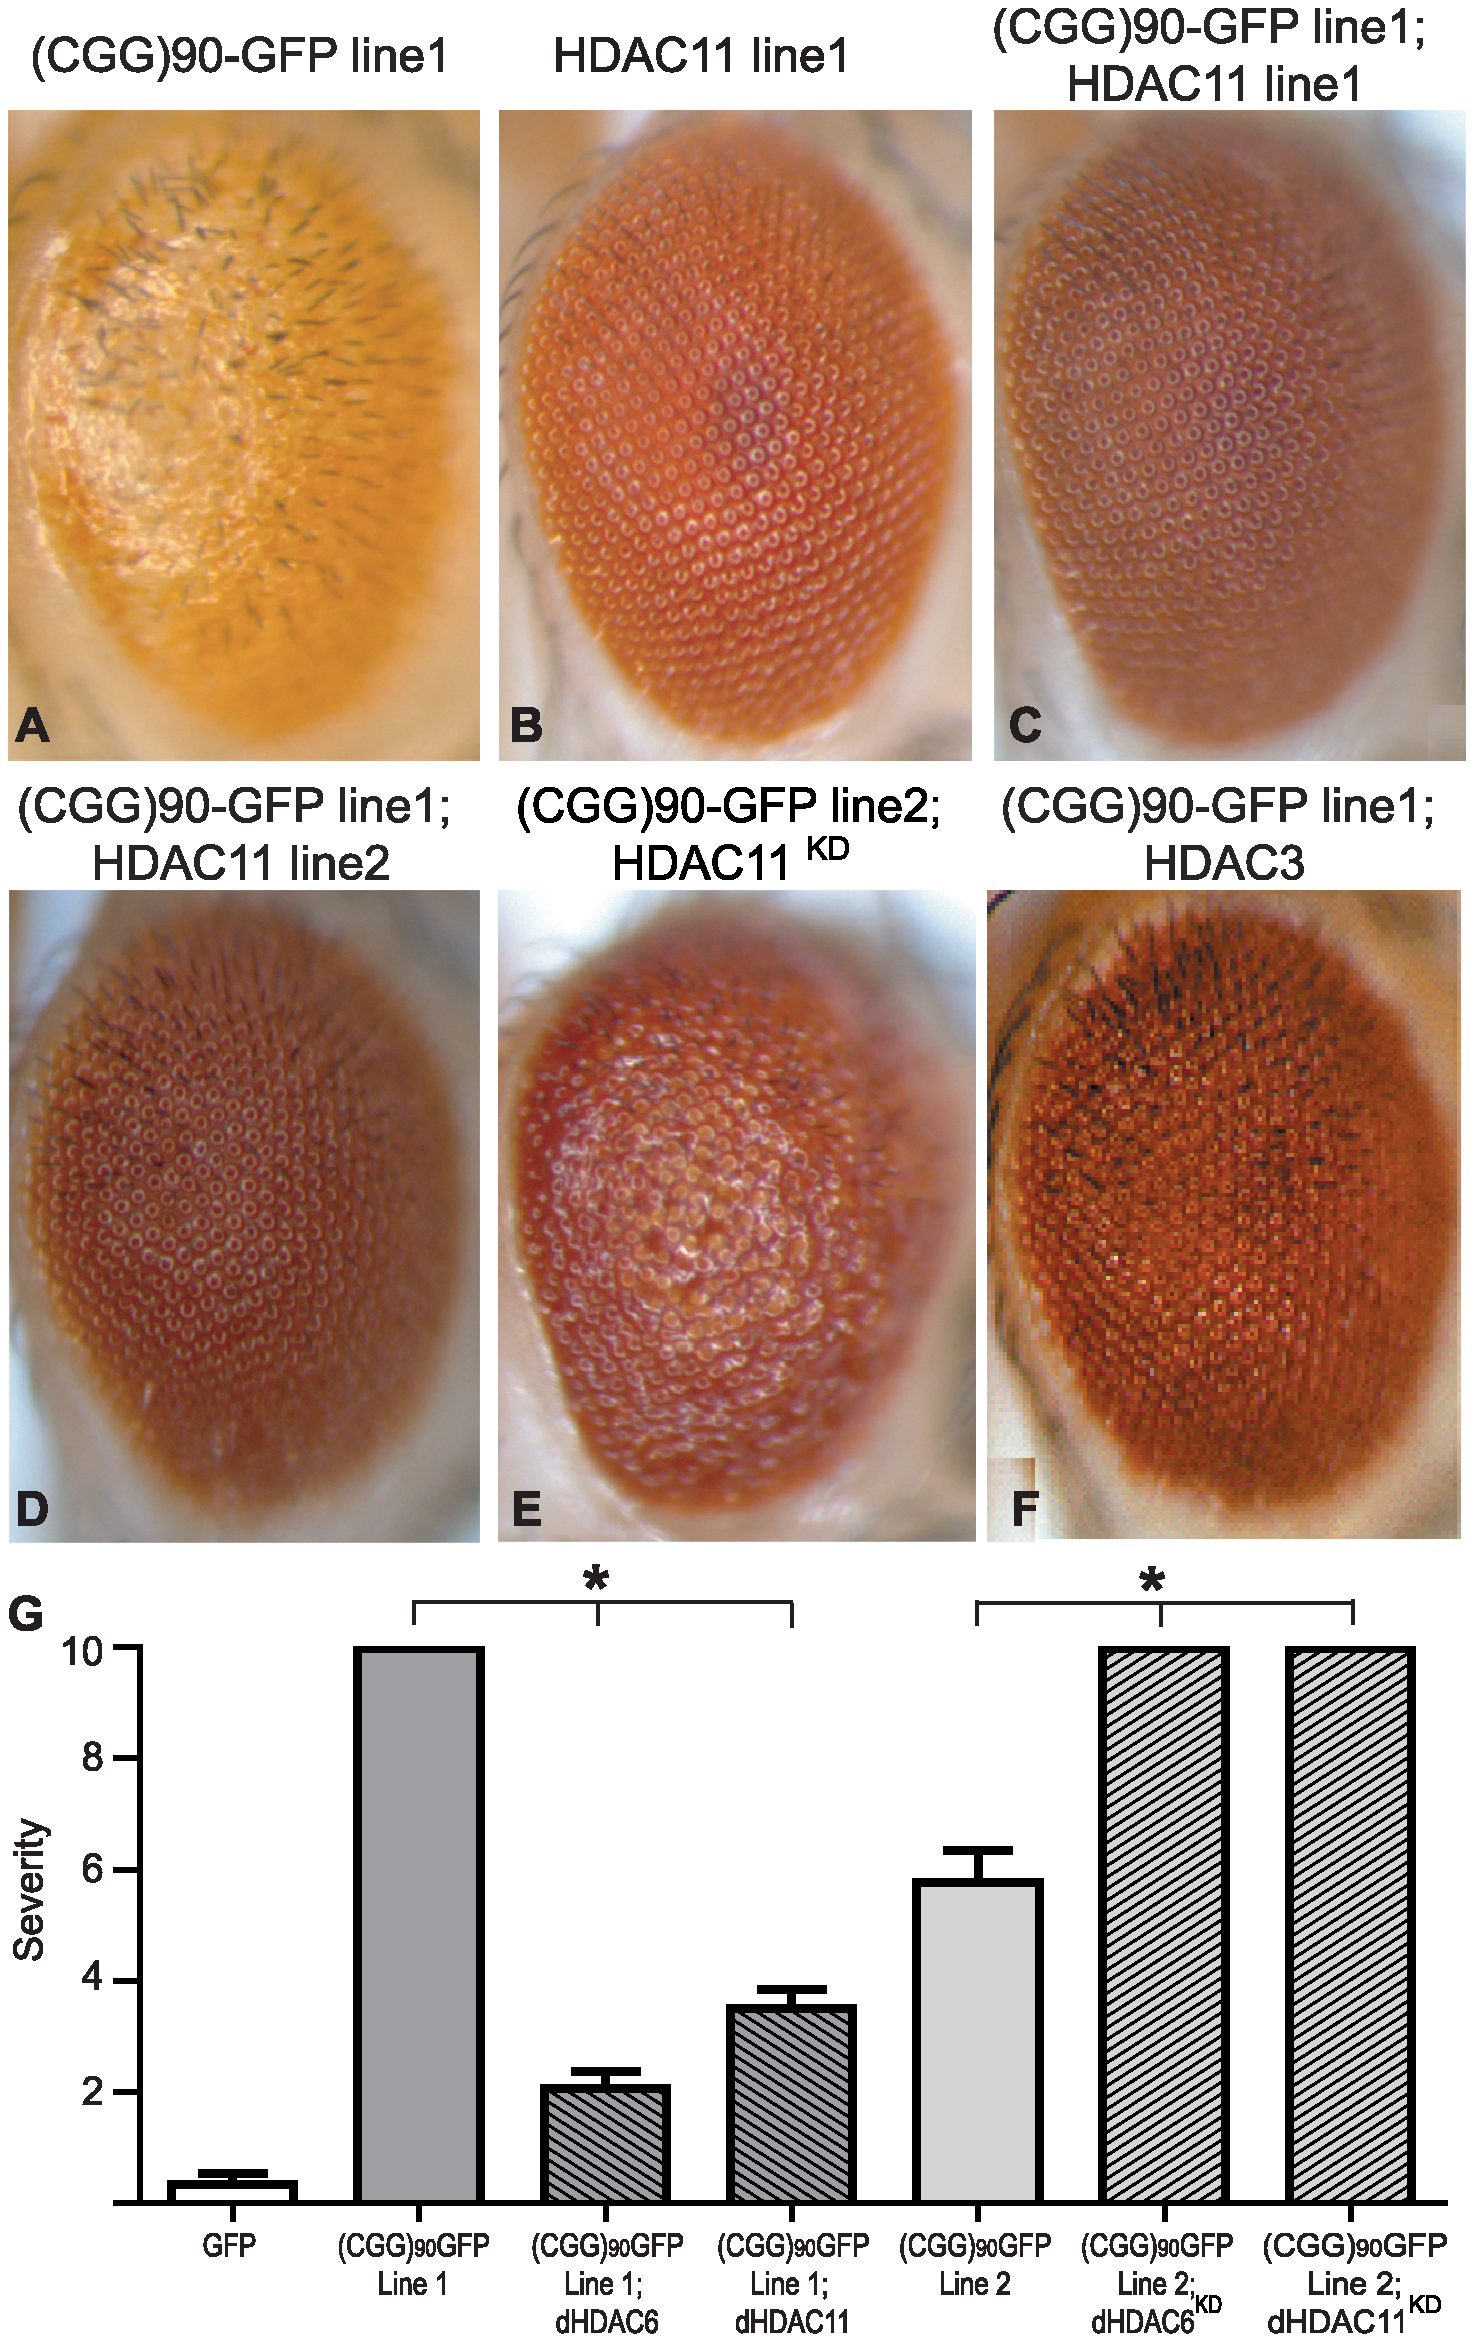 HDAC3 and HDAC11 also suppress (CGG)<sub>90</sub>-eGFP mRNA–induced neurodegeneration.